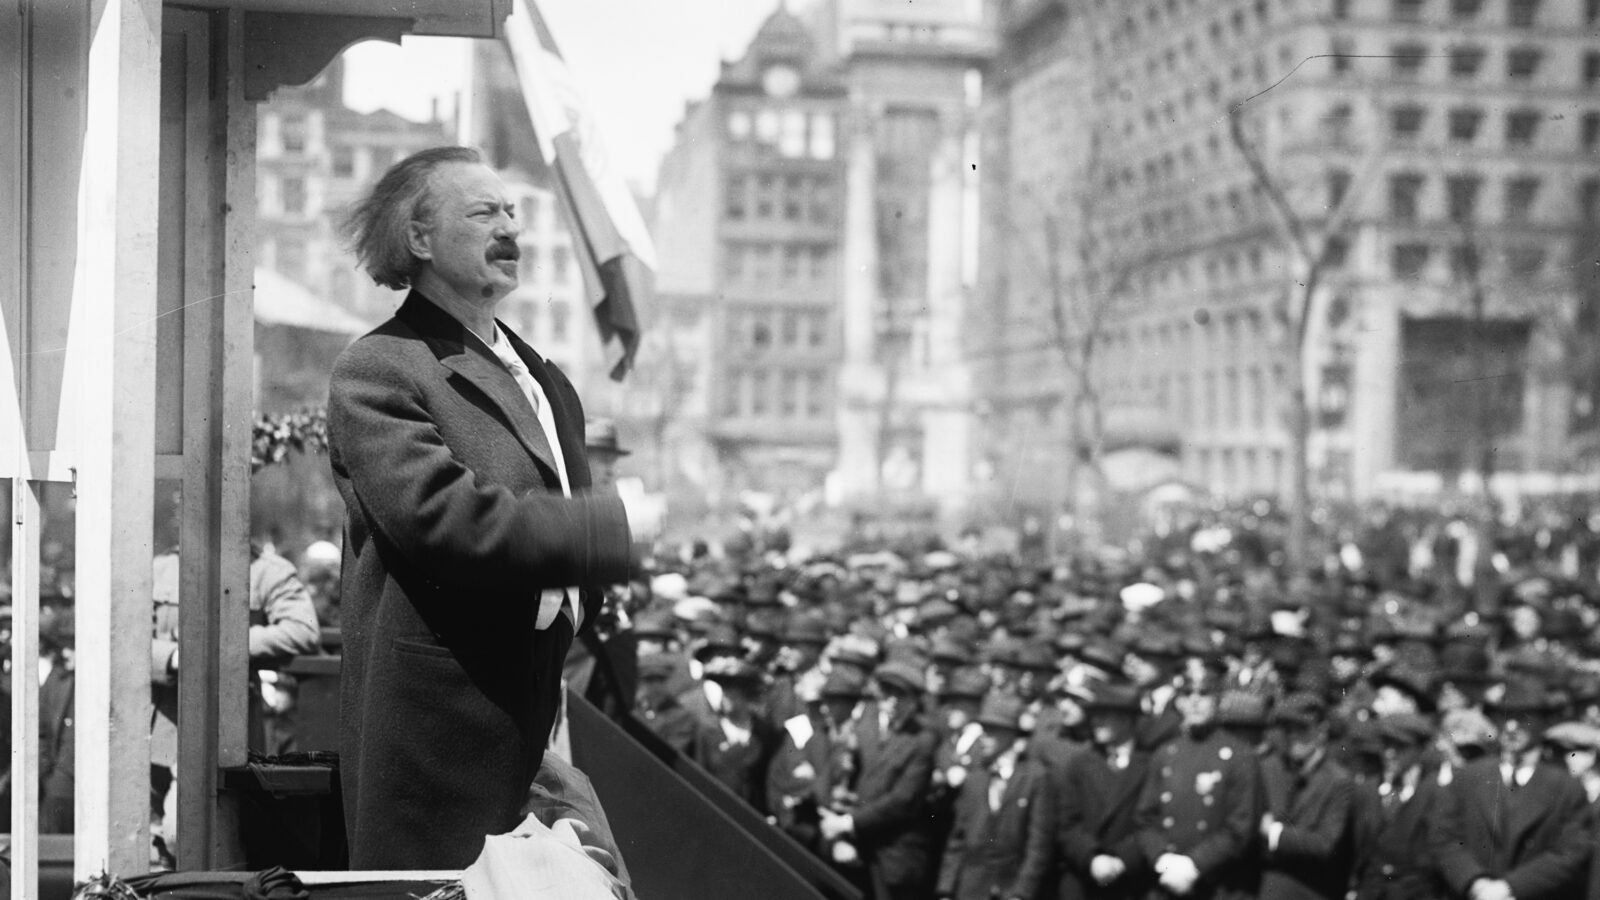 Ignacy Jan Paderewski addresses a crowd (Source: Library of Congress)